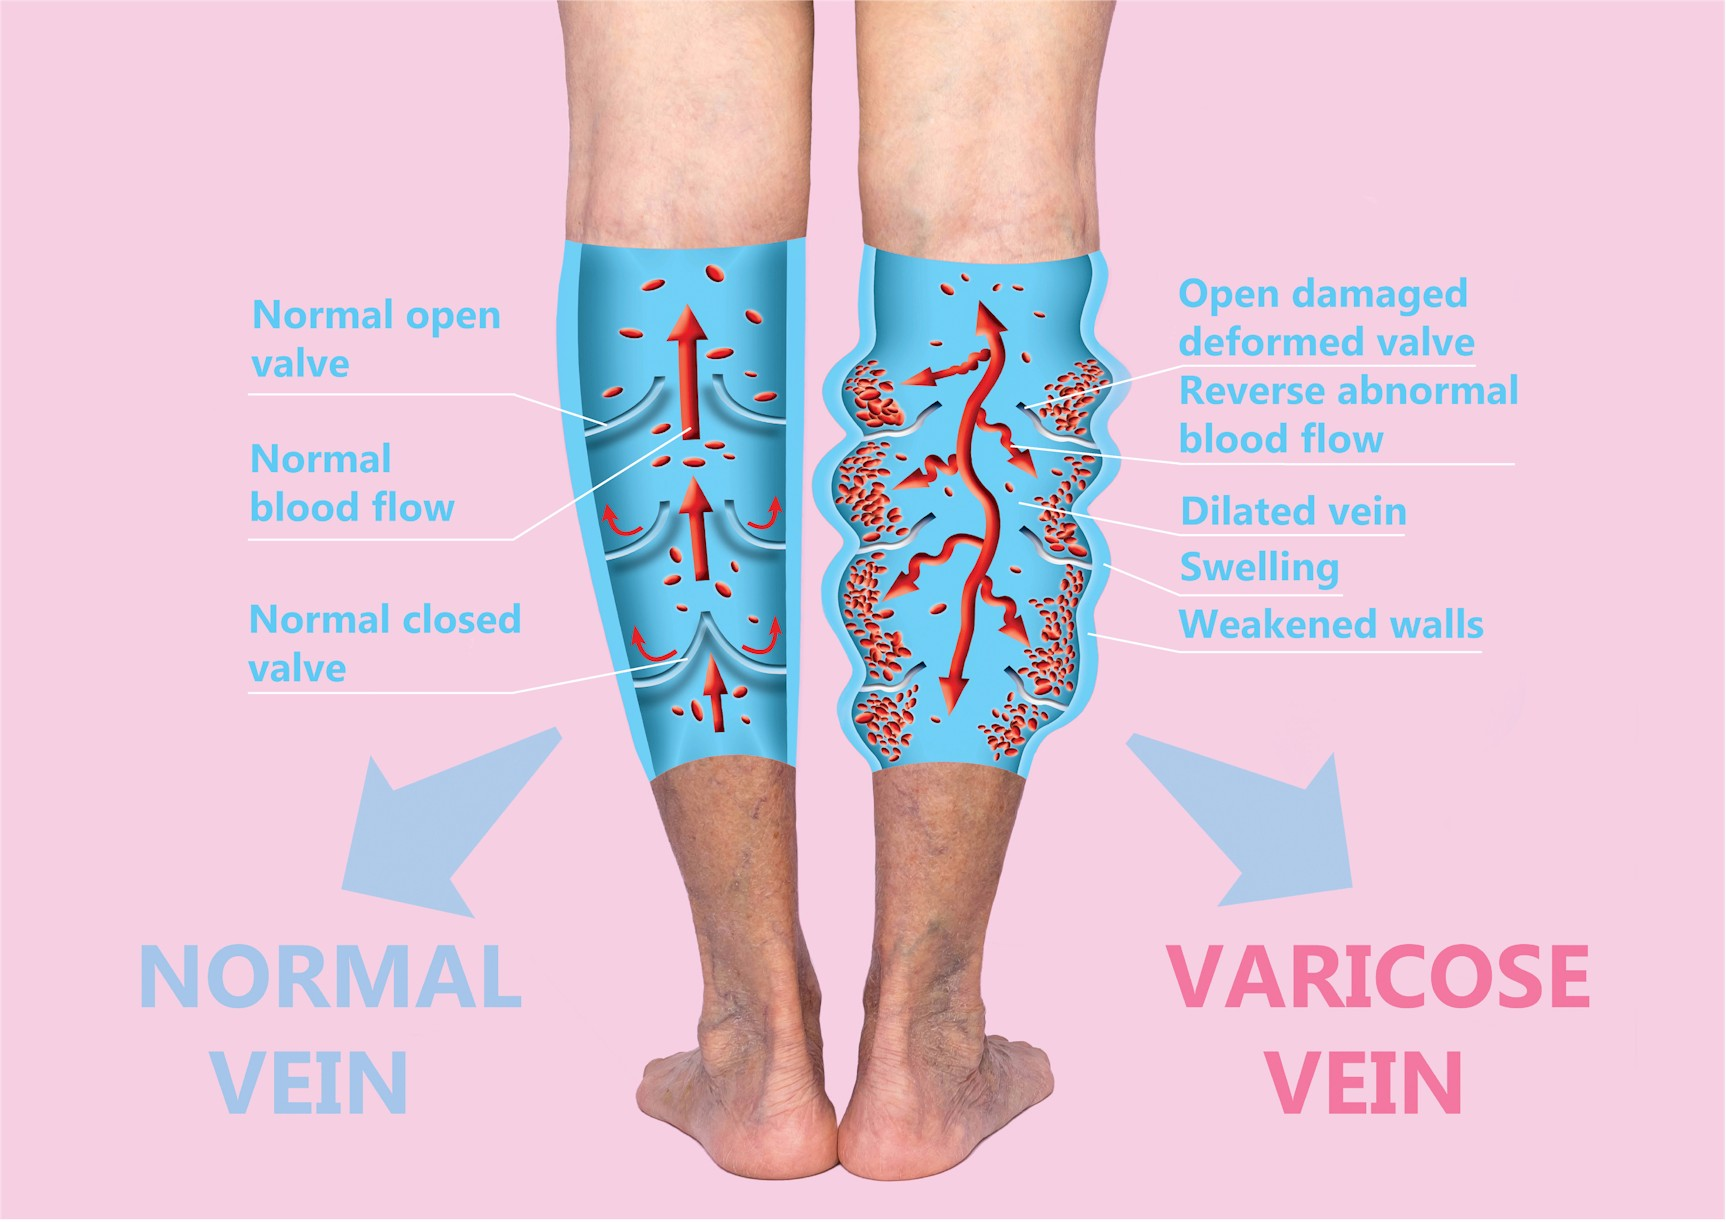 All Vein Procedures Are Designed To Help The Veins Empty The Tissues. Some procedures destroy veins and some open them up. This seems contradictory.